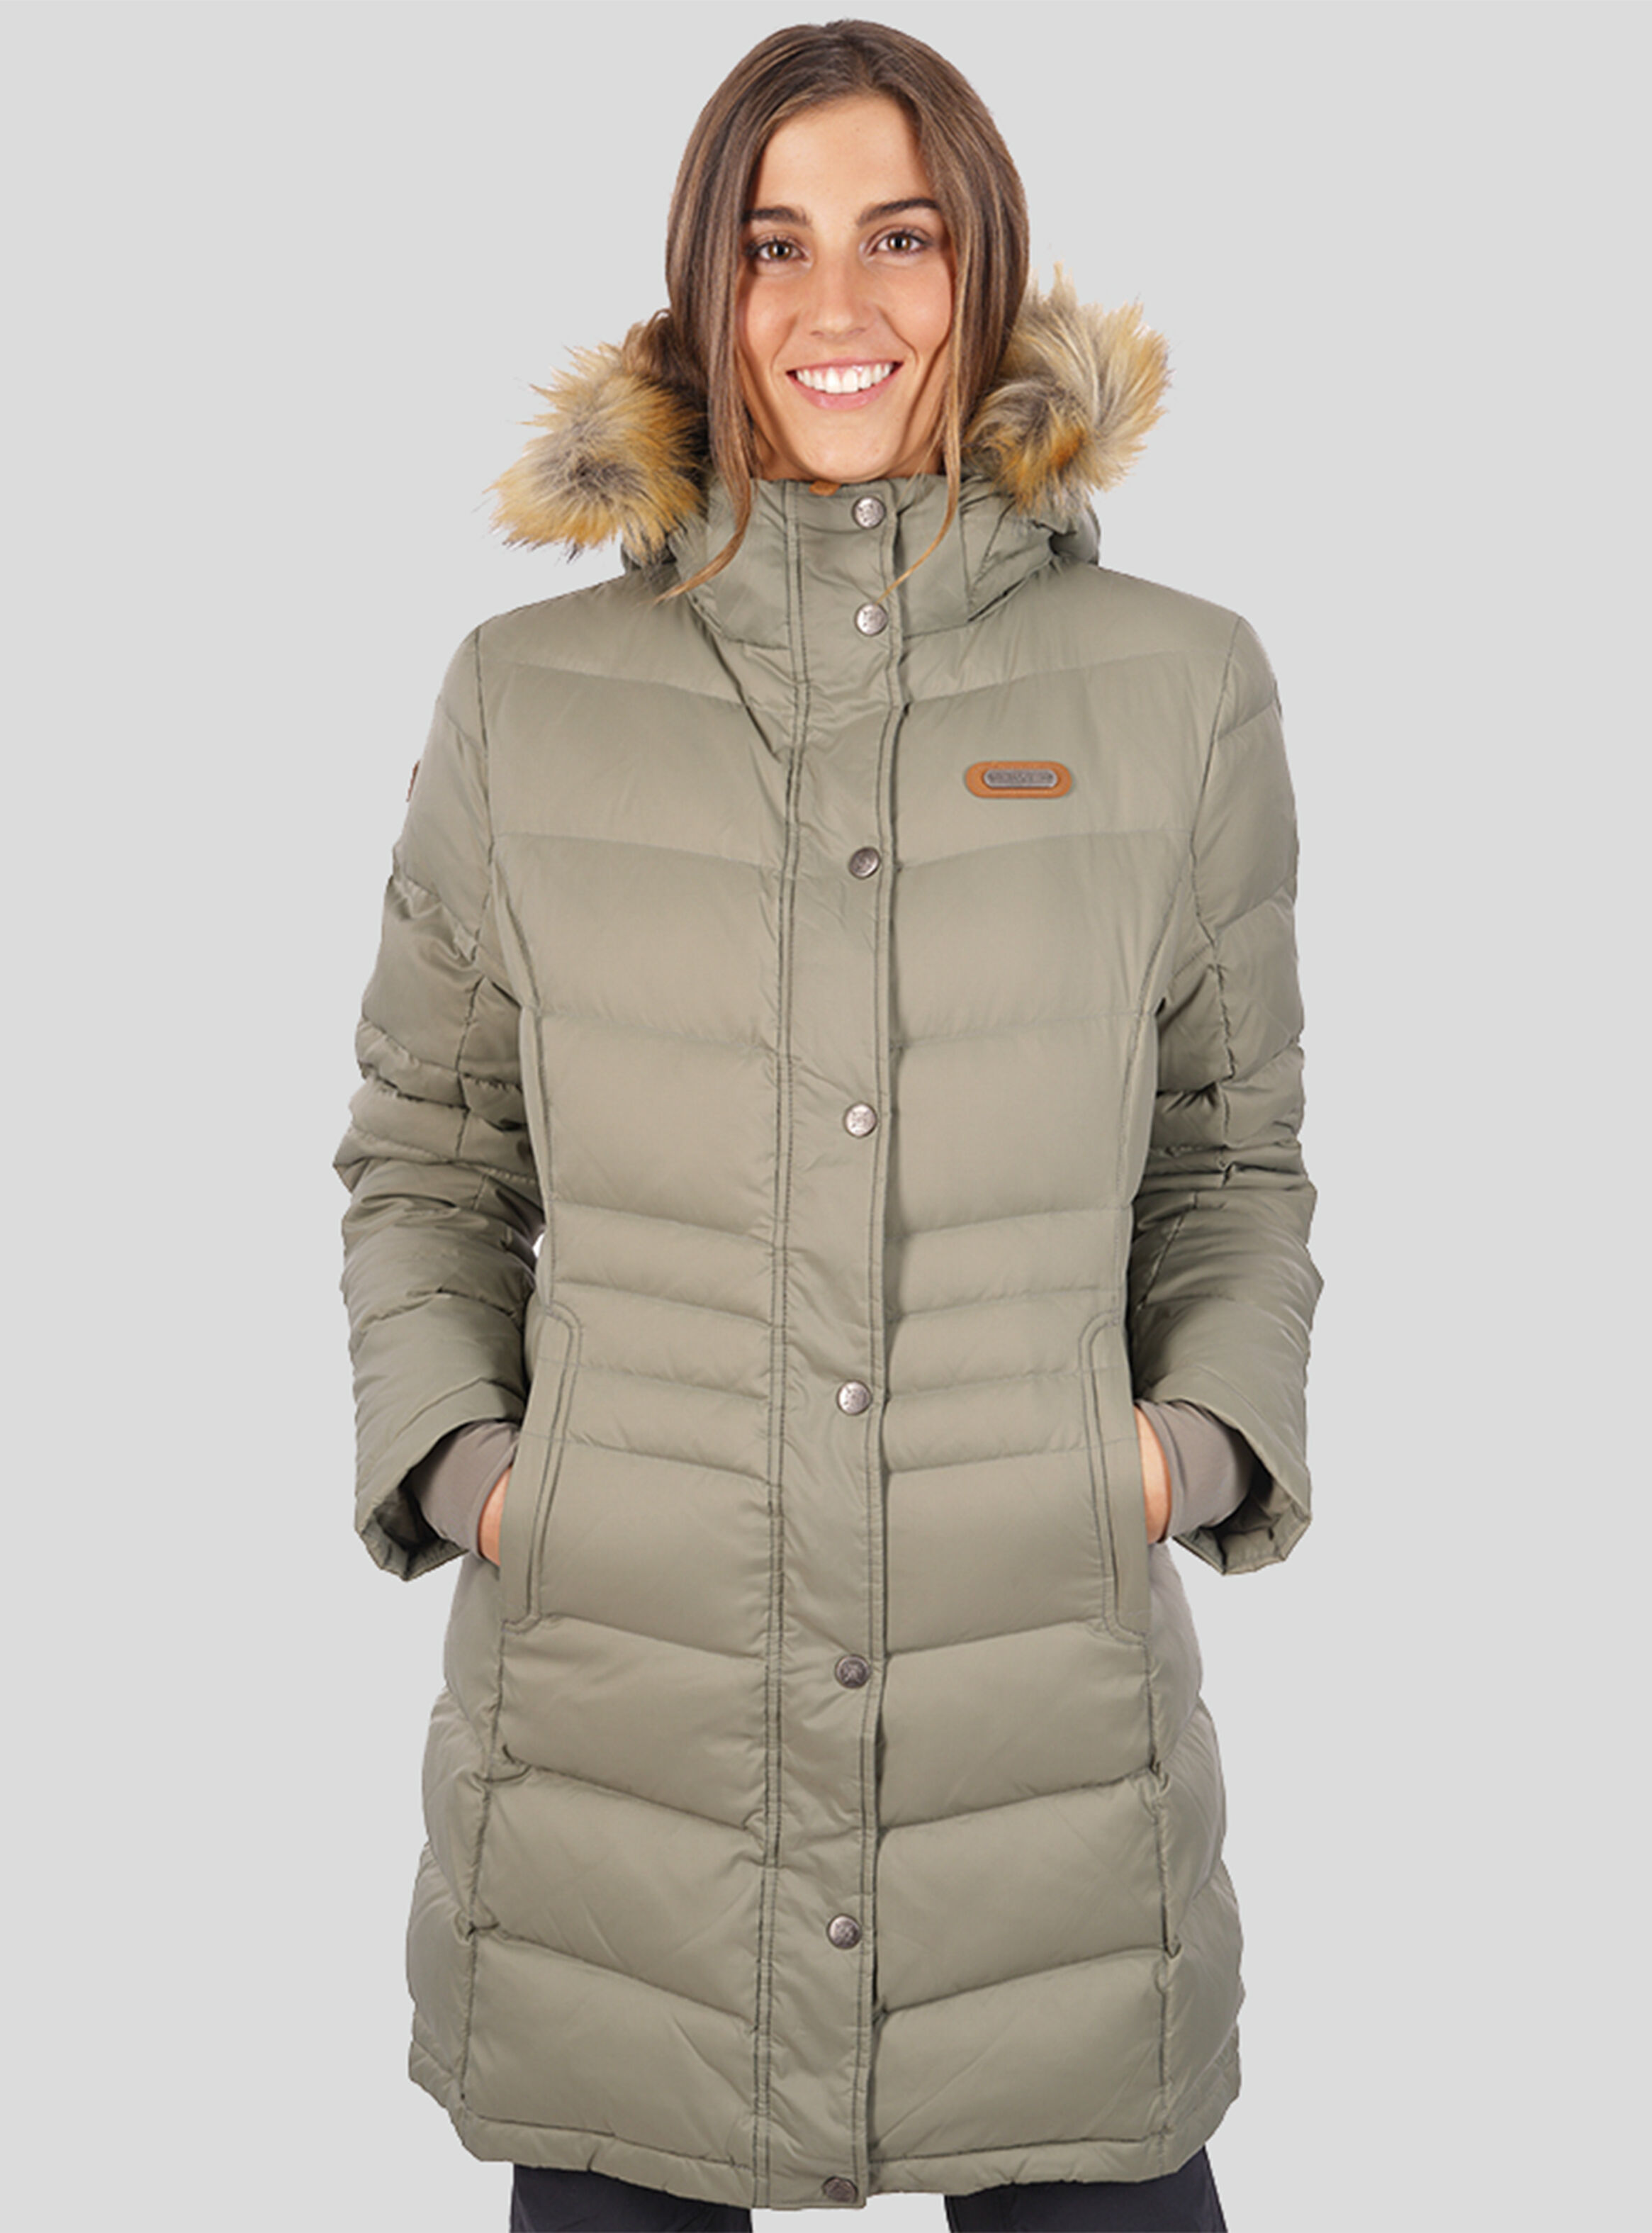 Lippi Mujer Lon Parka Quilca M Down PknO8w0X